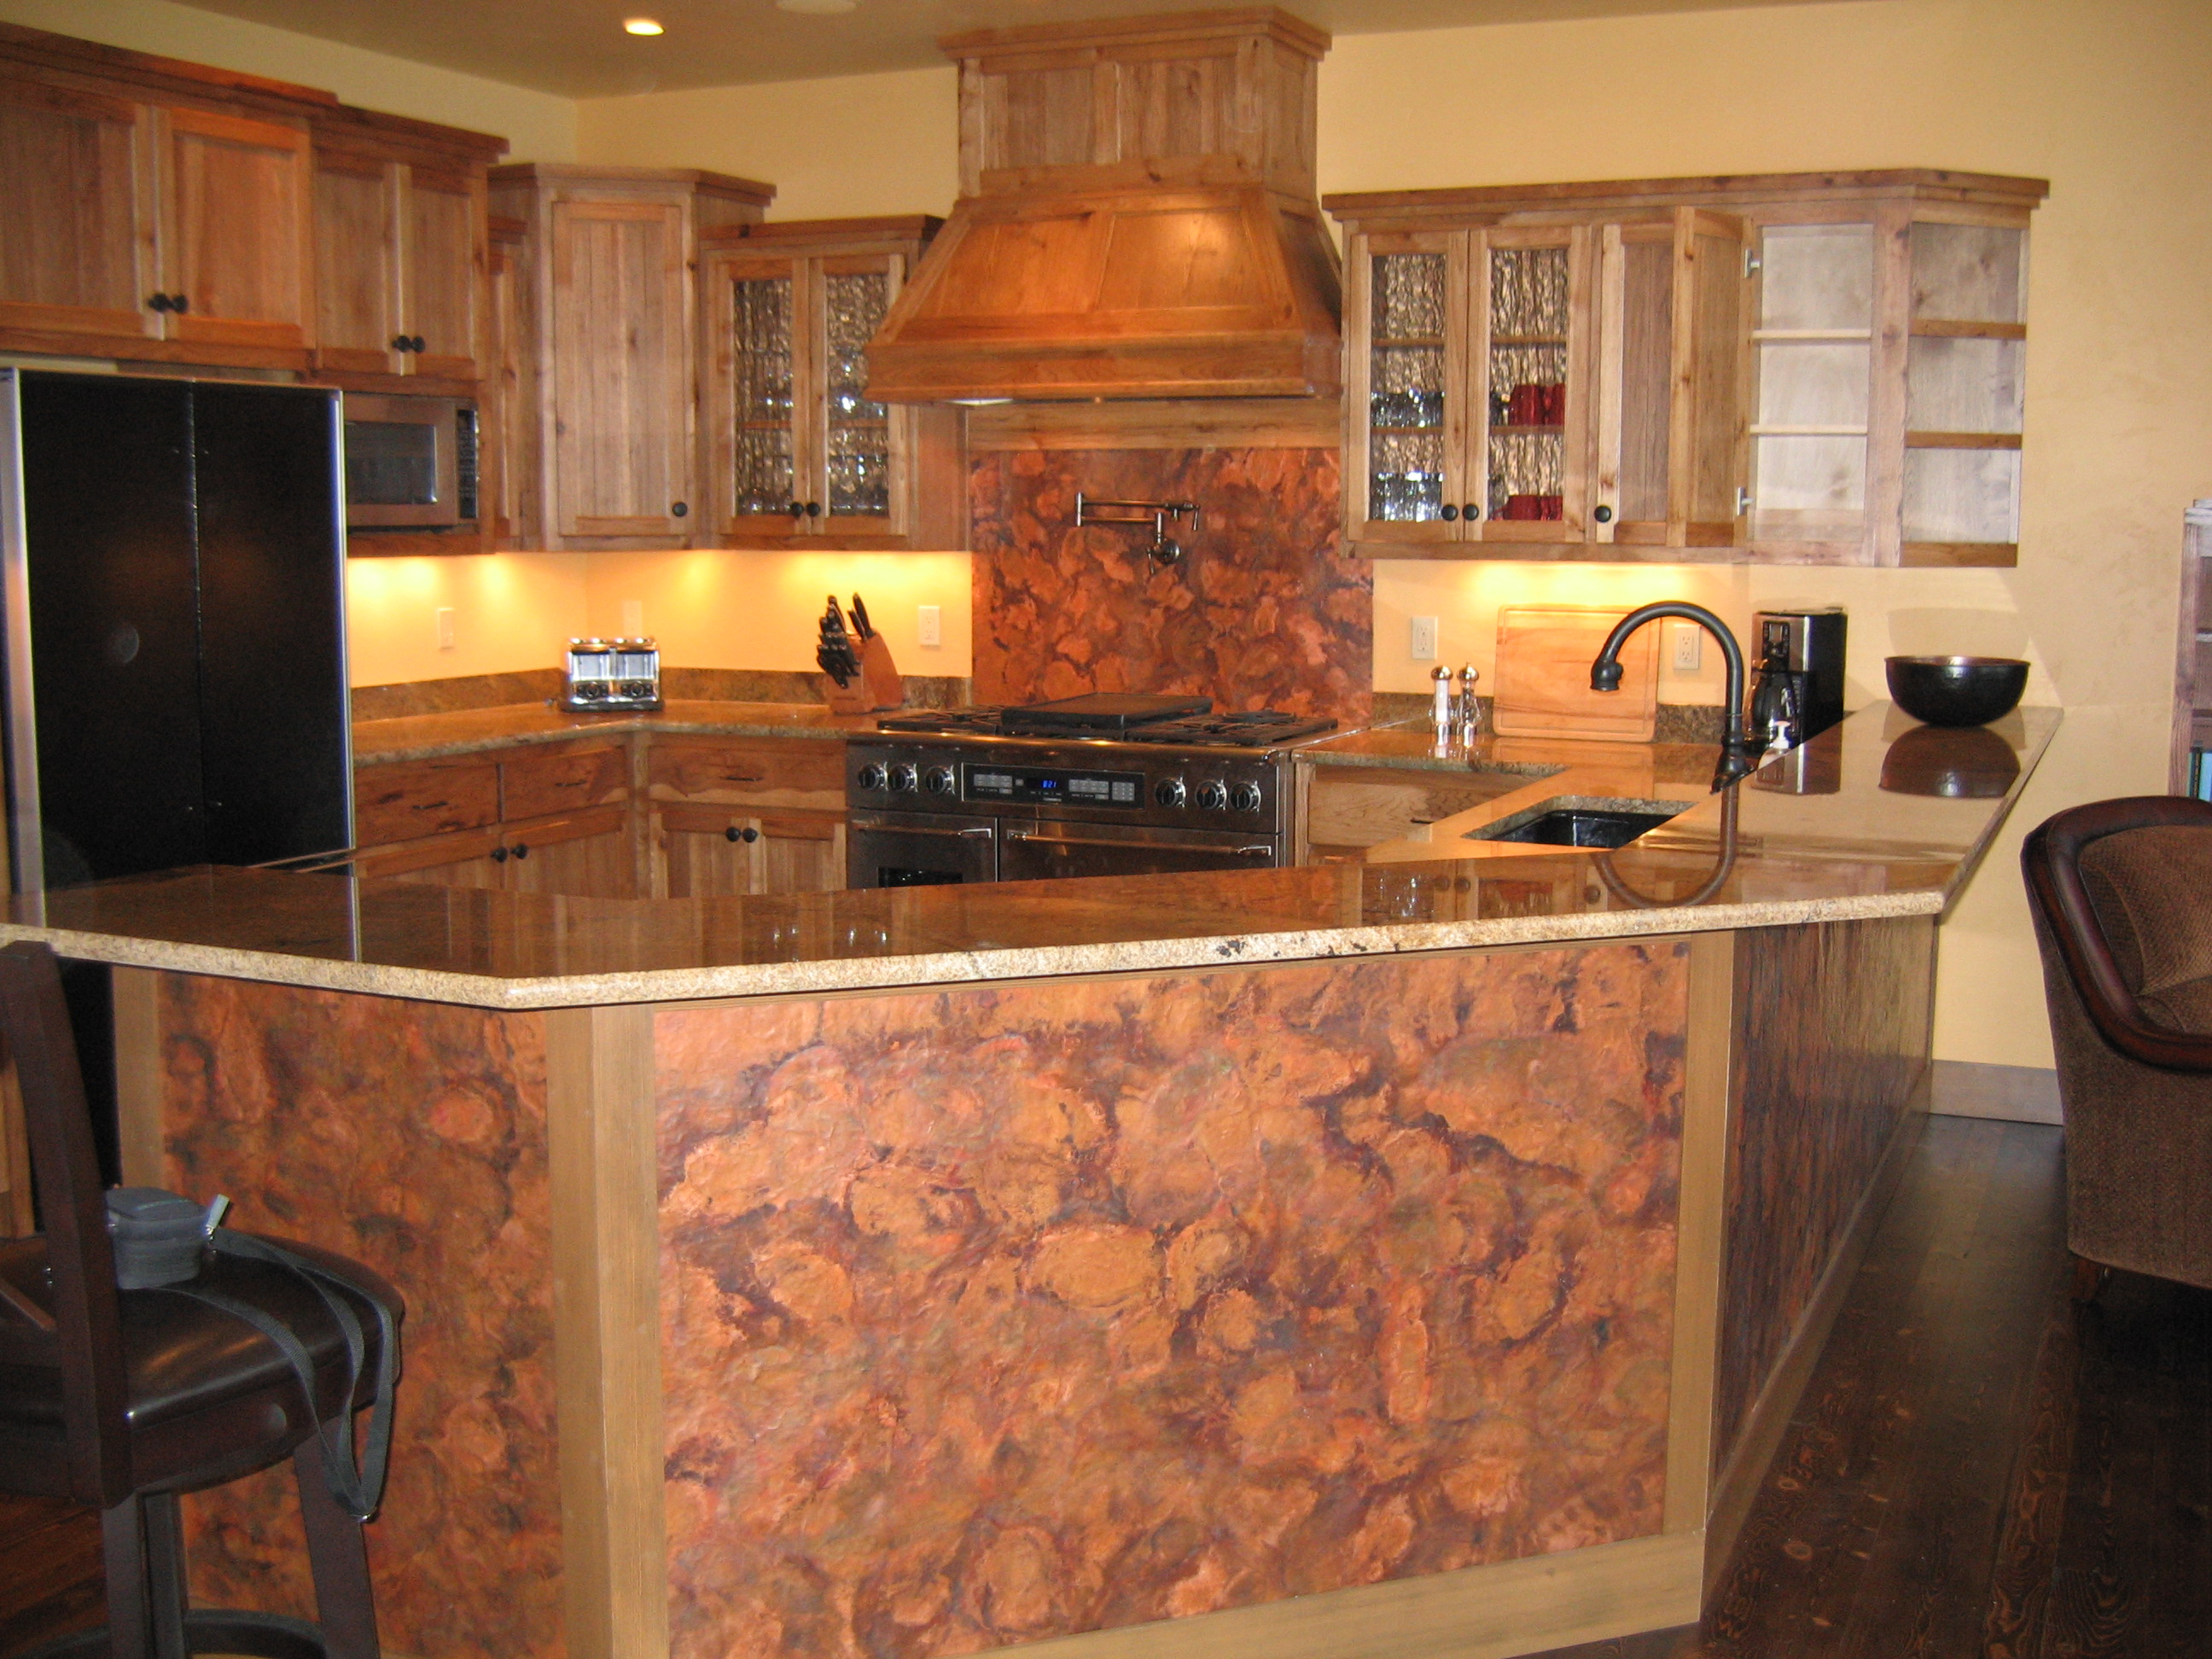 butcher copper peggy pjh oak turned featured block designs diy countertops review at kitchen great flooring wood into countertop remodelaholic